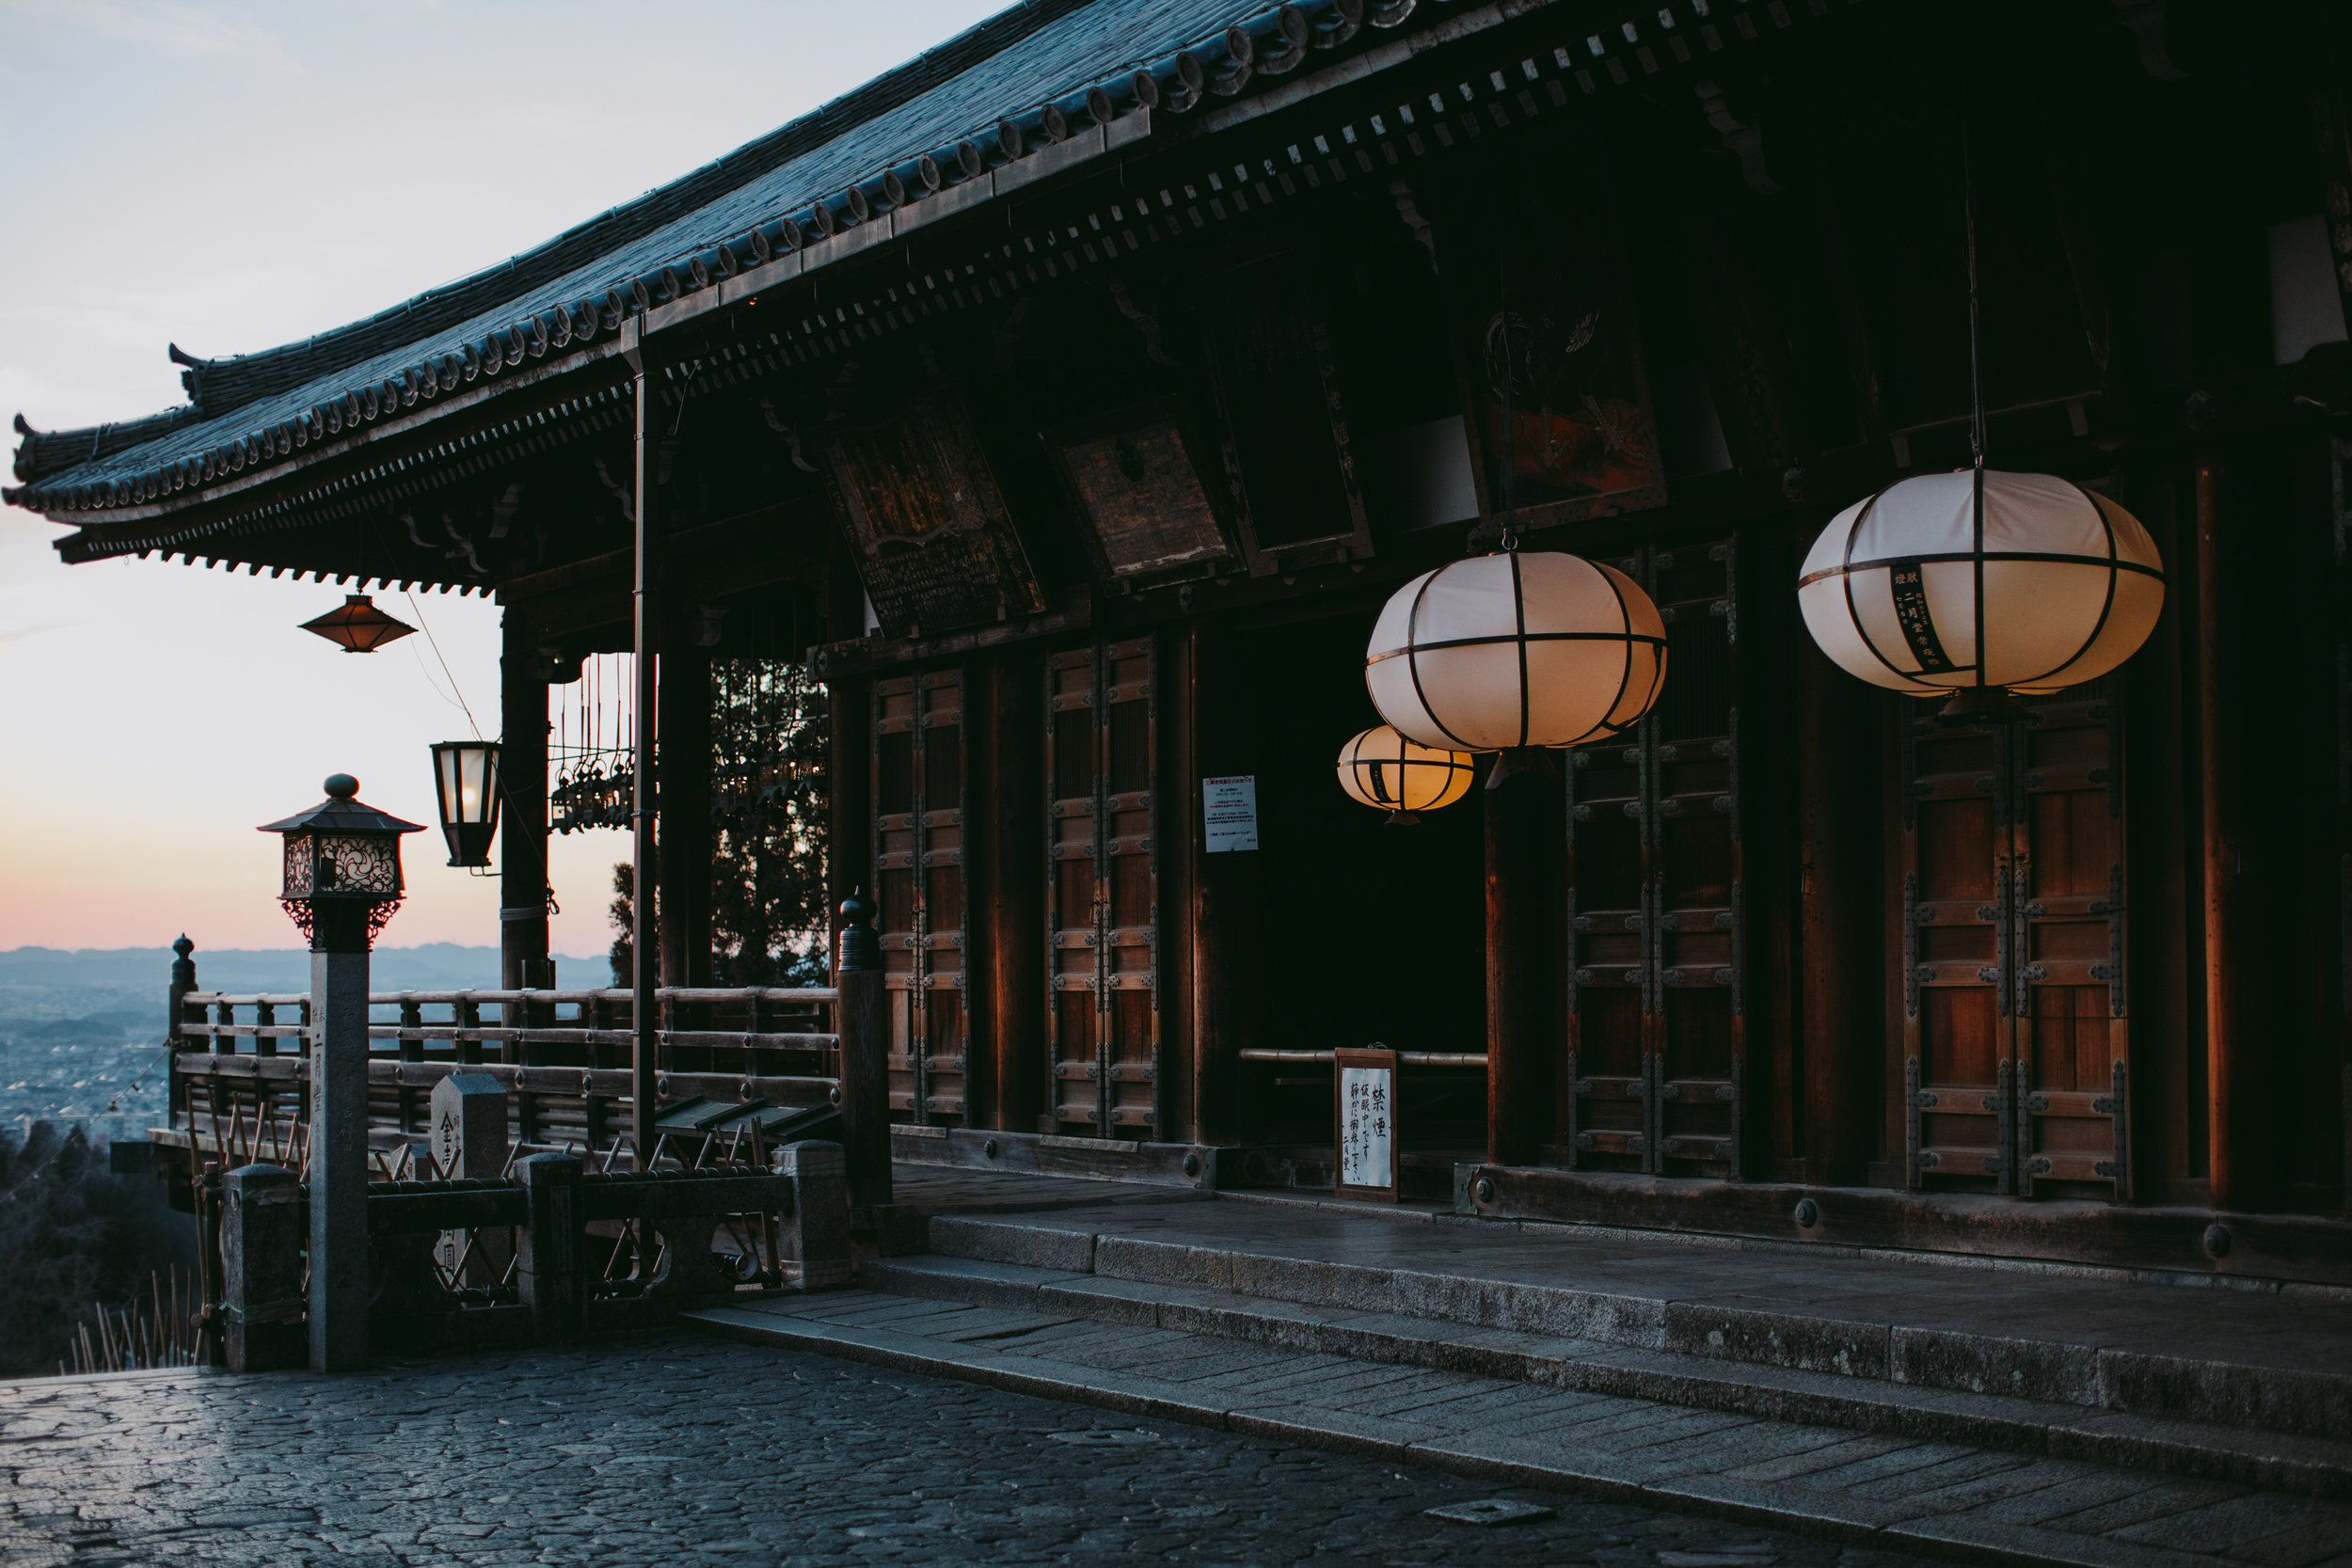 MikeSeehagel-commercial-lifestyle-travel-photography-Japan-83.jpg